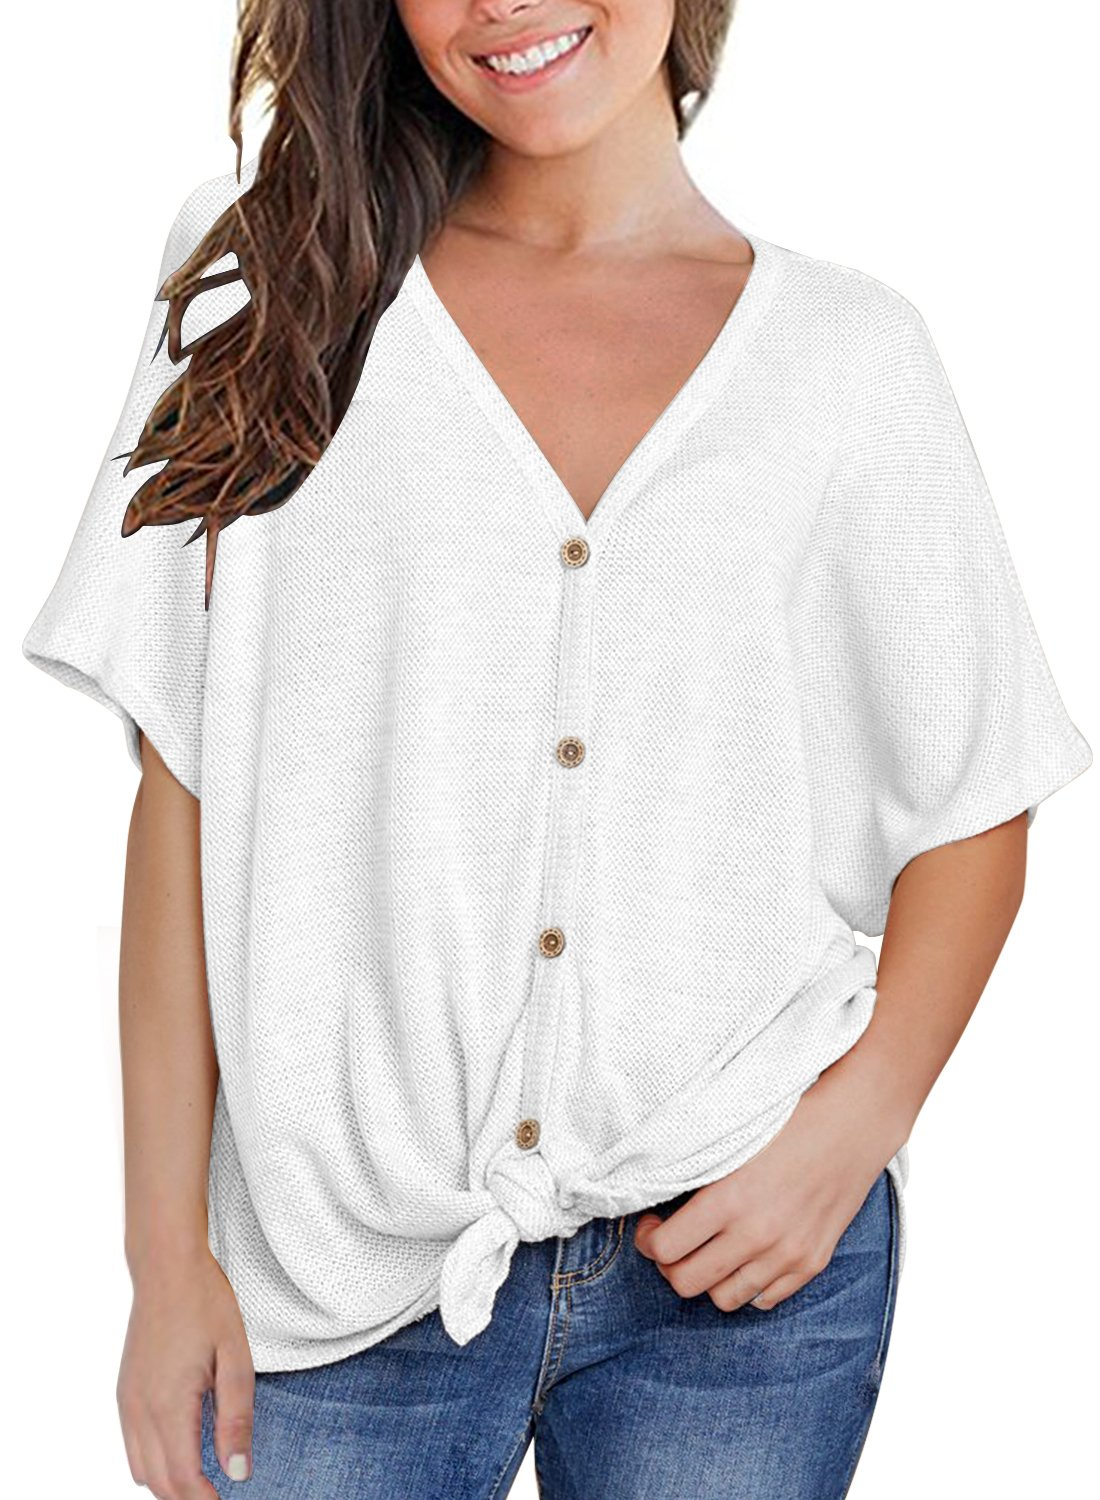 MIHOLL Women's Casual Tops Short Sleeve V Neck Button Down Loose Blouse Shirts (Small, White)